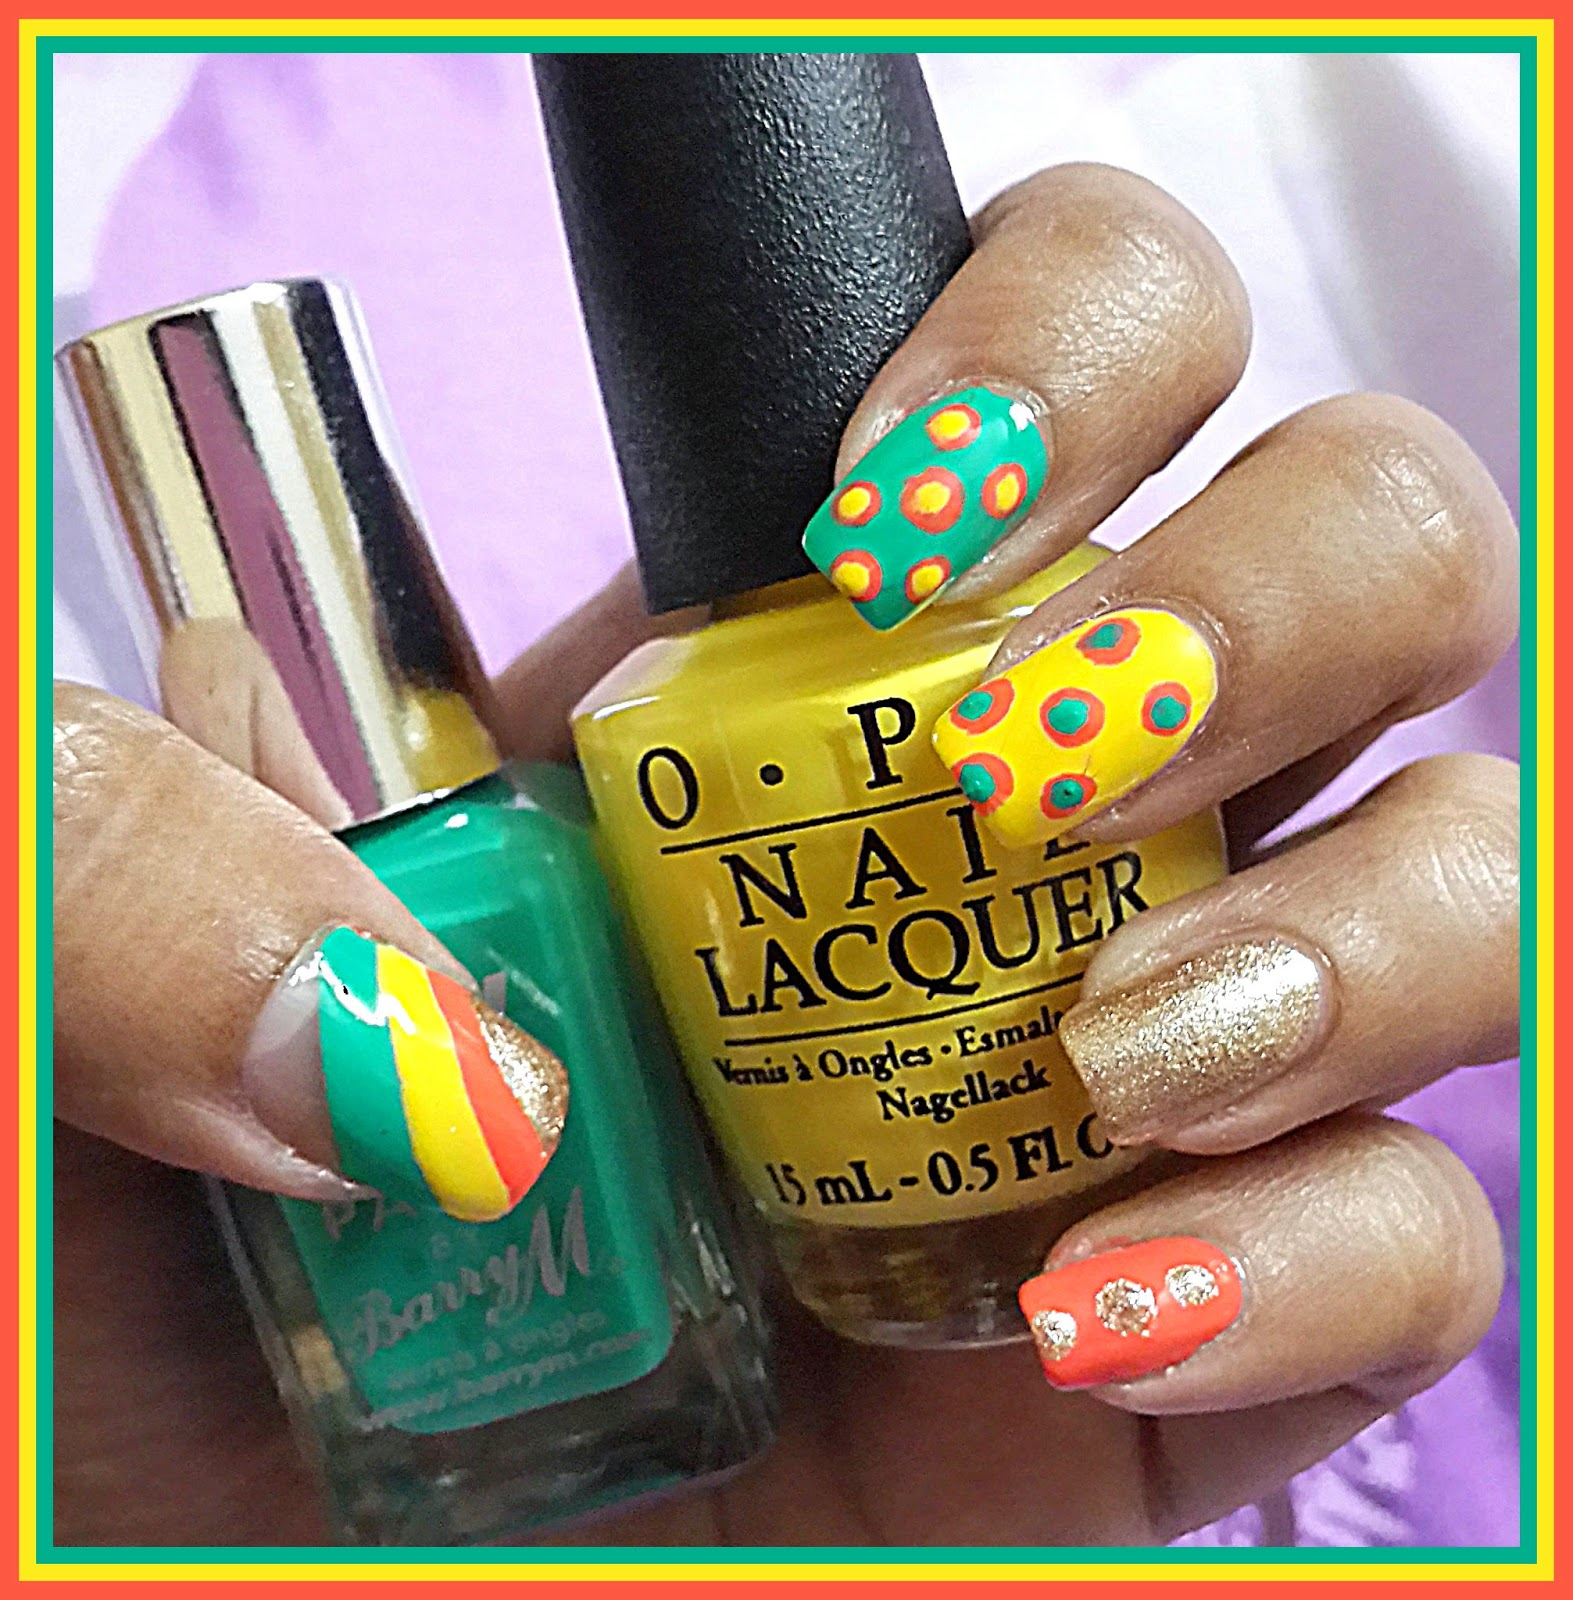 Lipflation: Cute Colorful Manicure with Dots, Stripes and a Gold ...